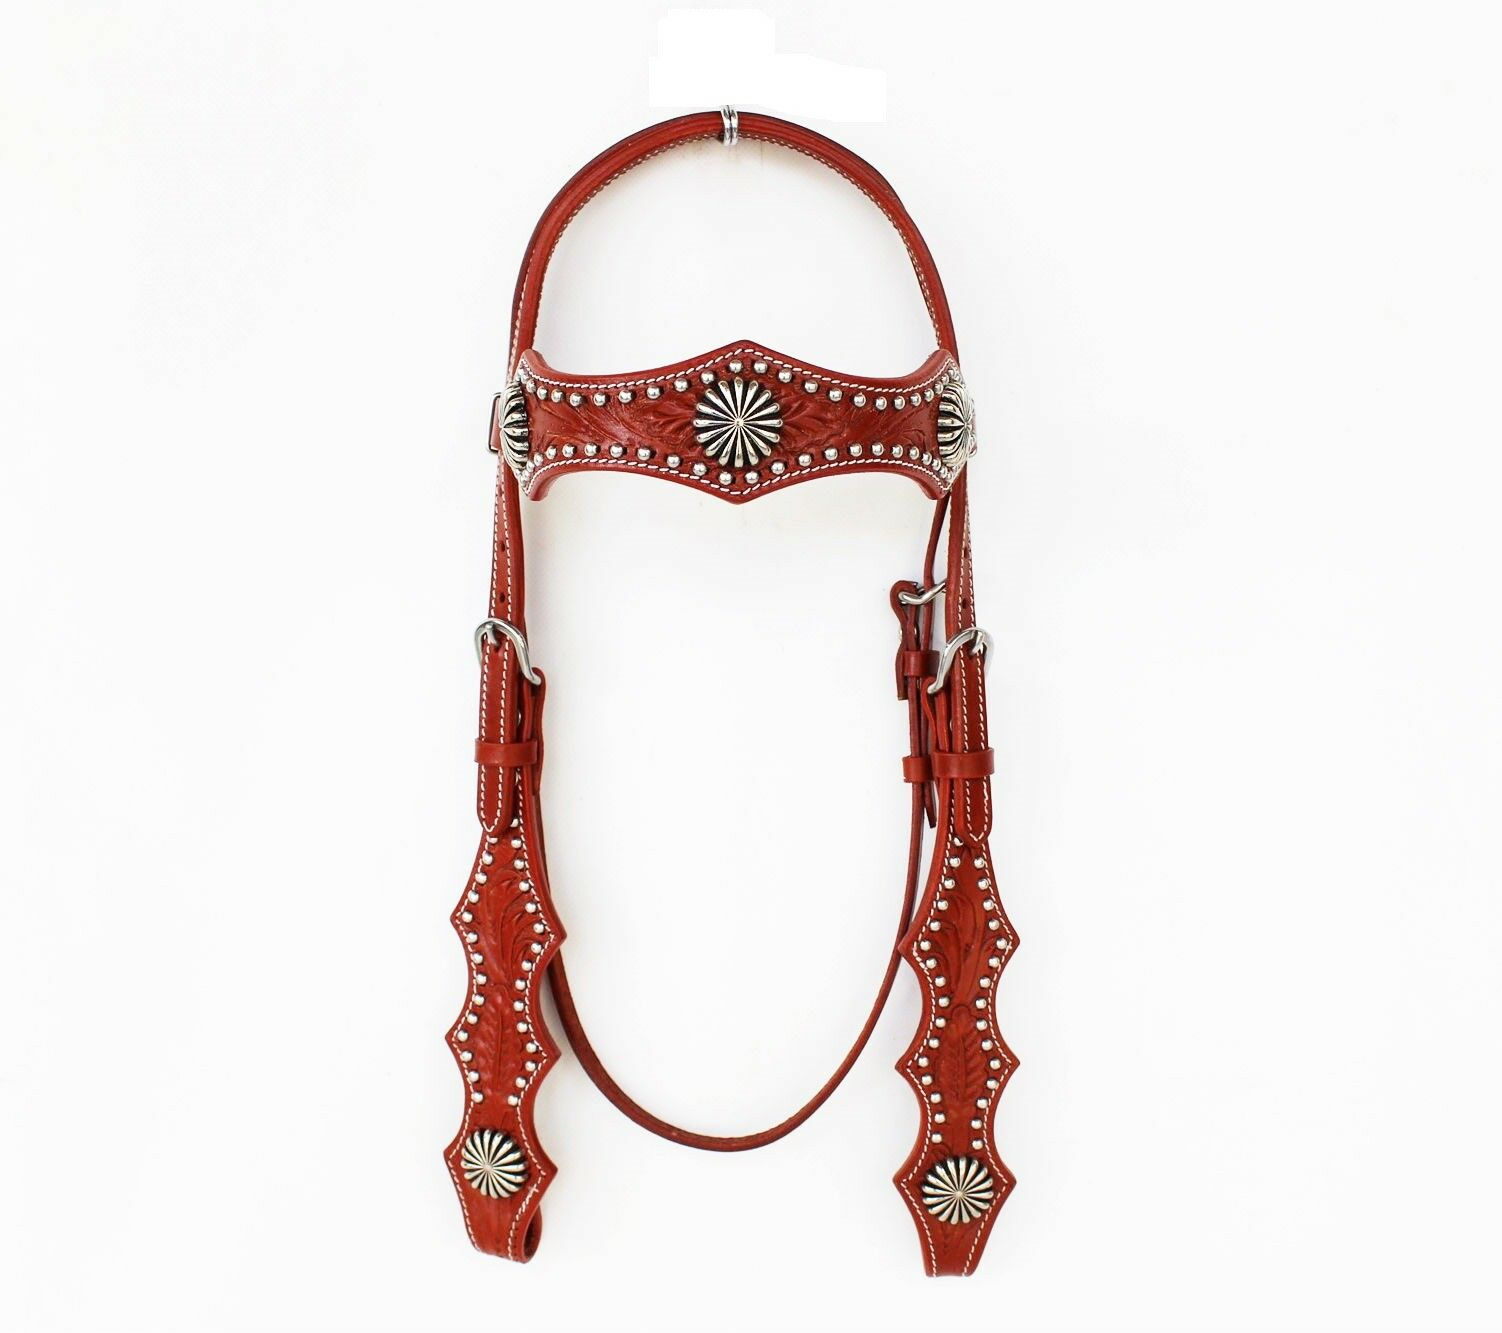 Western Tan Leather Shaped Brow band Style Headstall with Spots